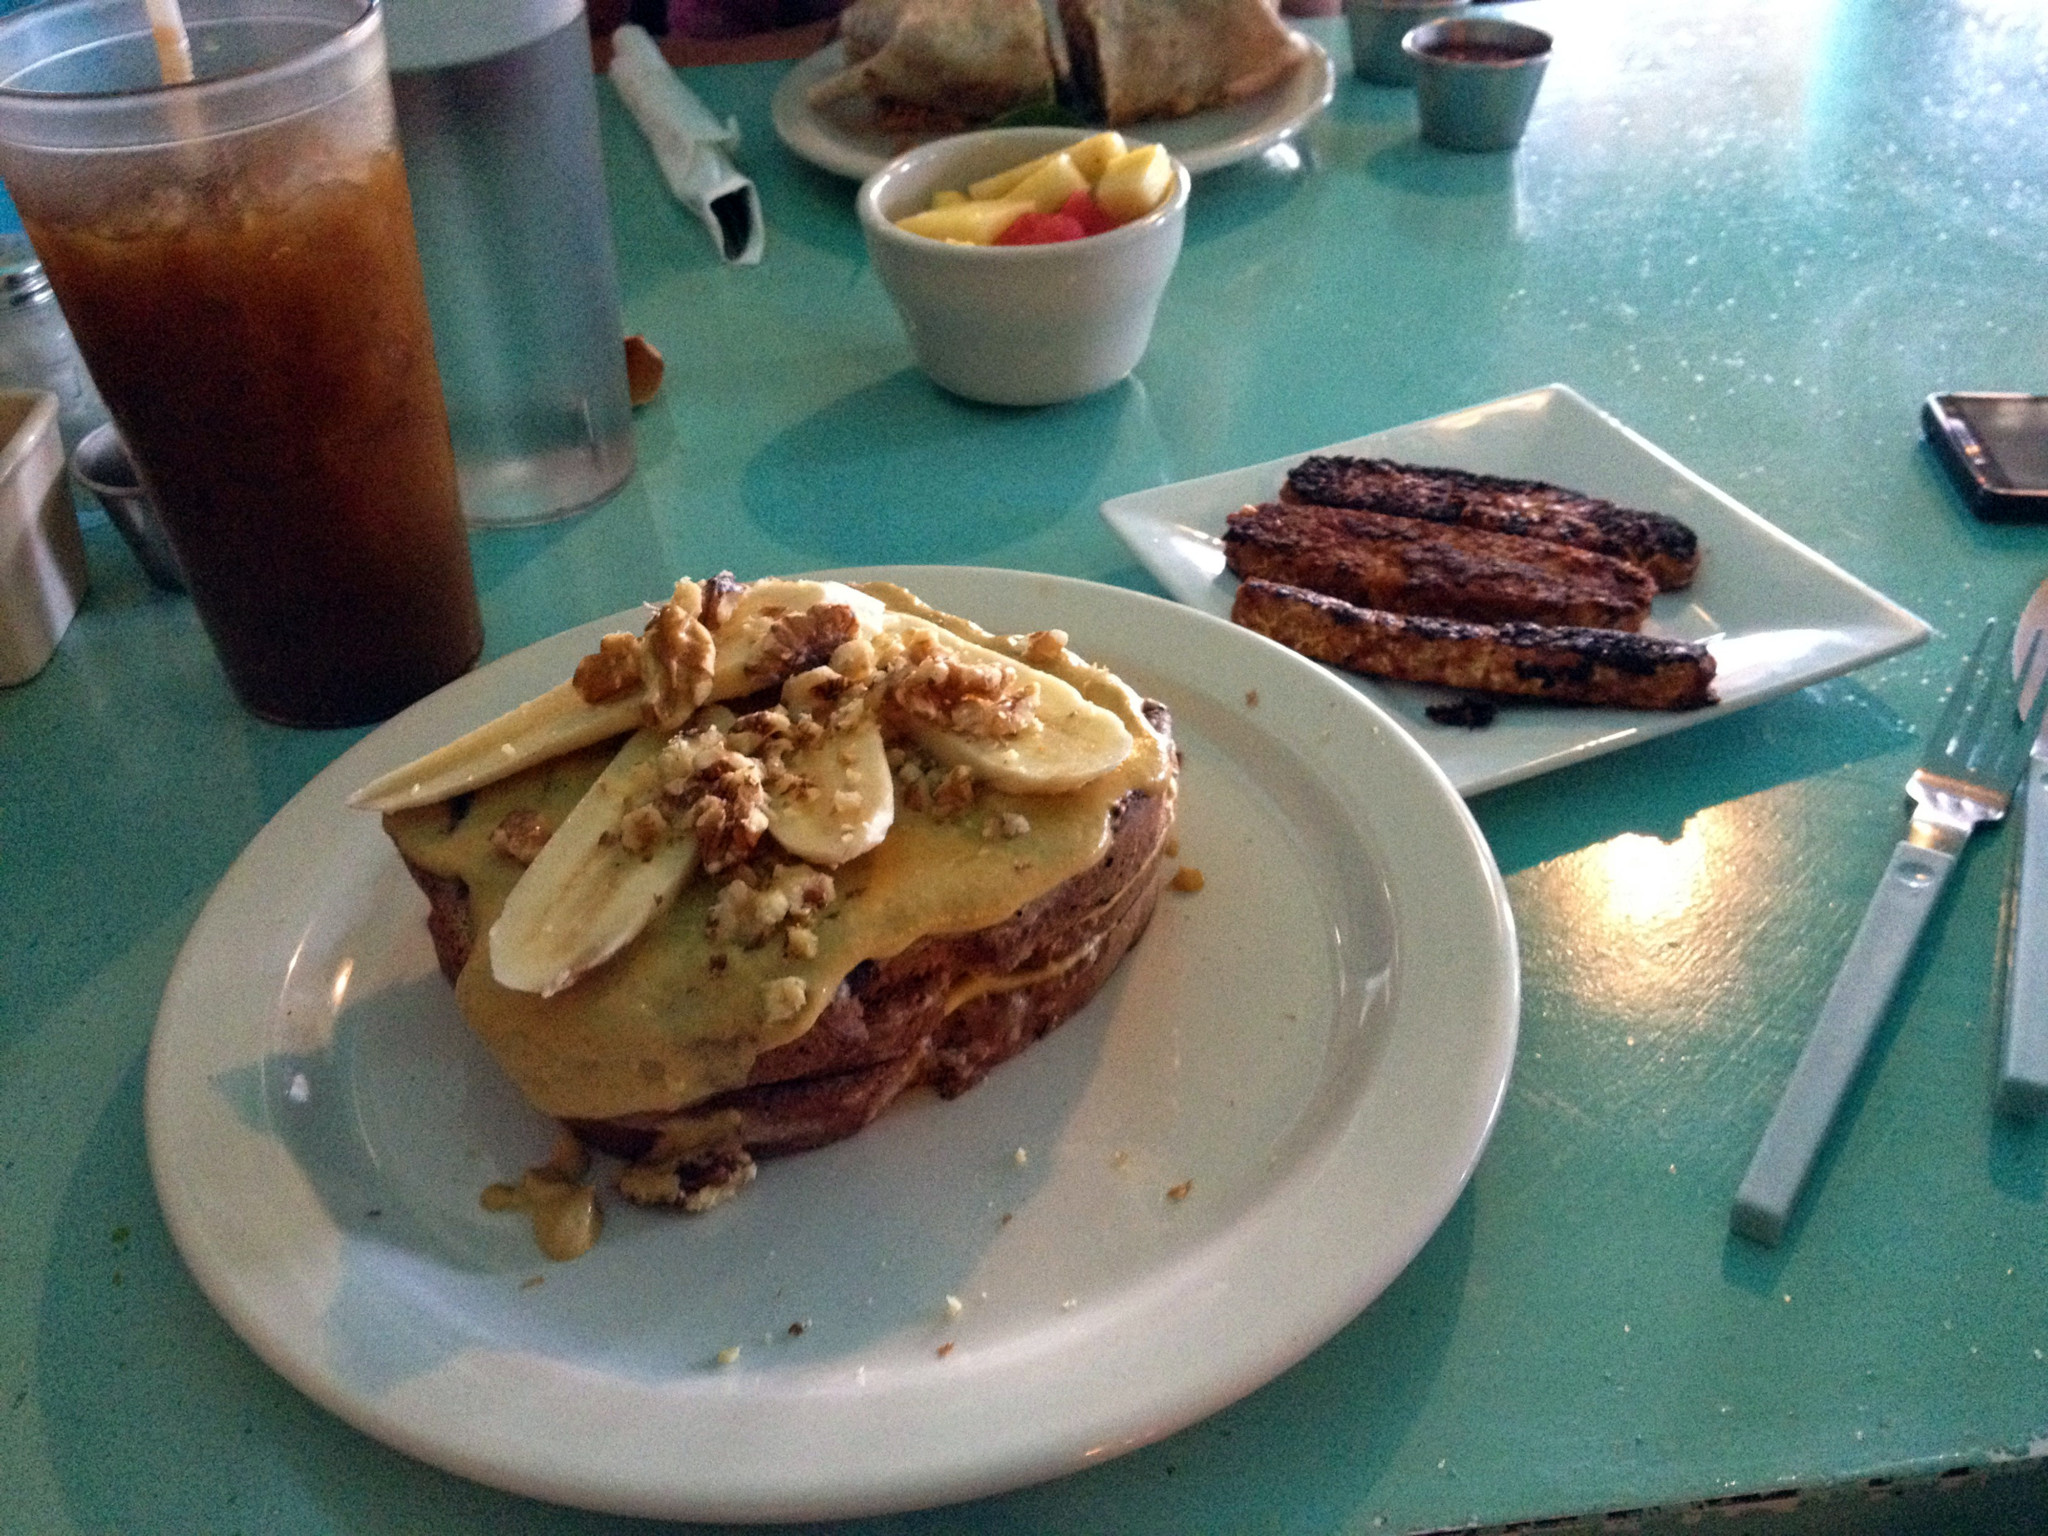 Vegan Austin: Guide to Eating Vegan in Austin